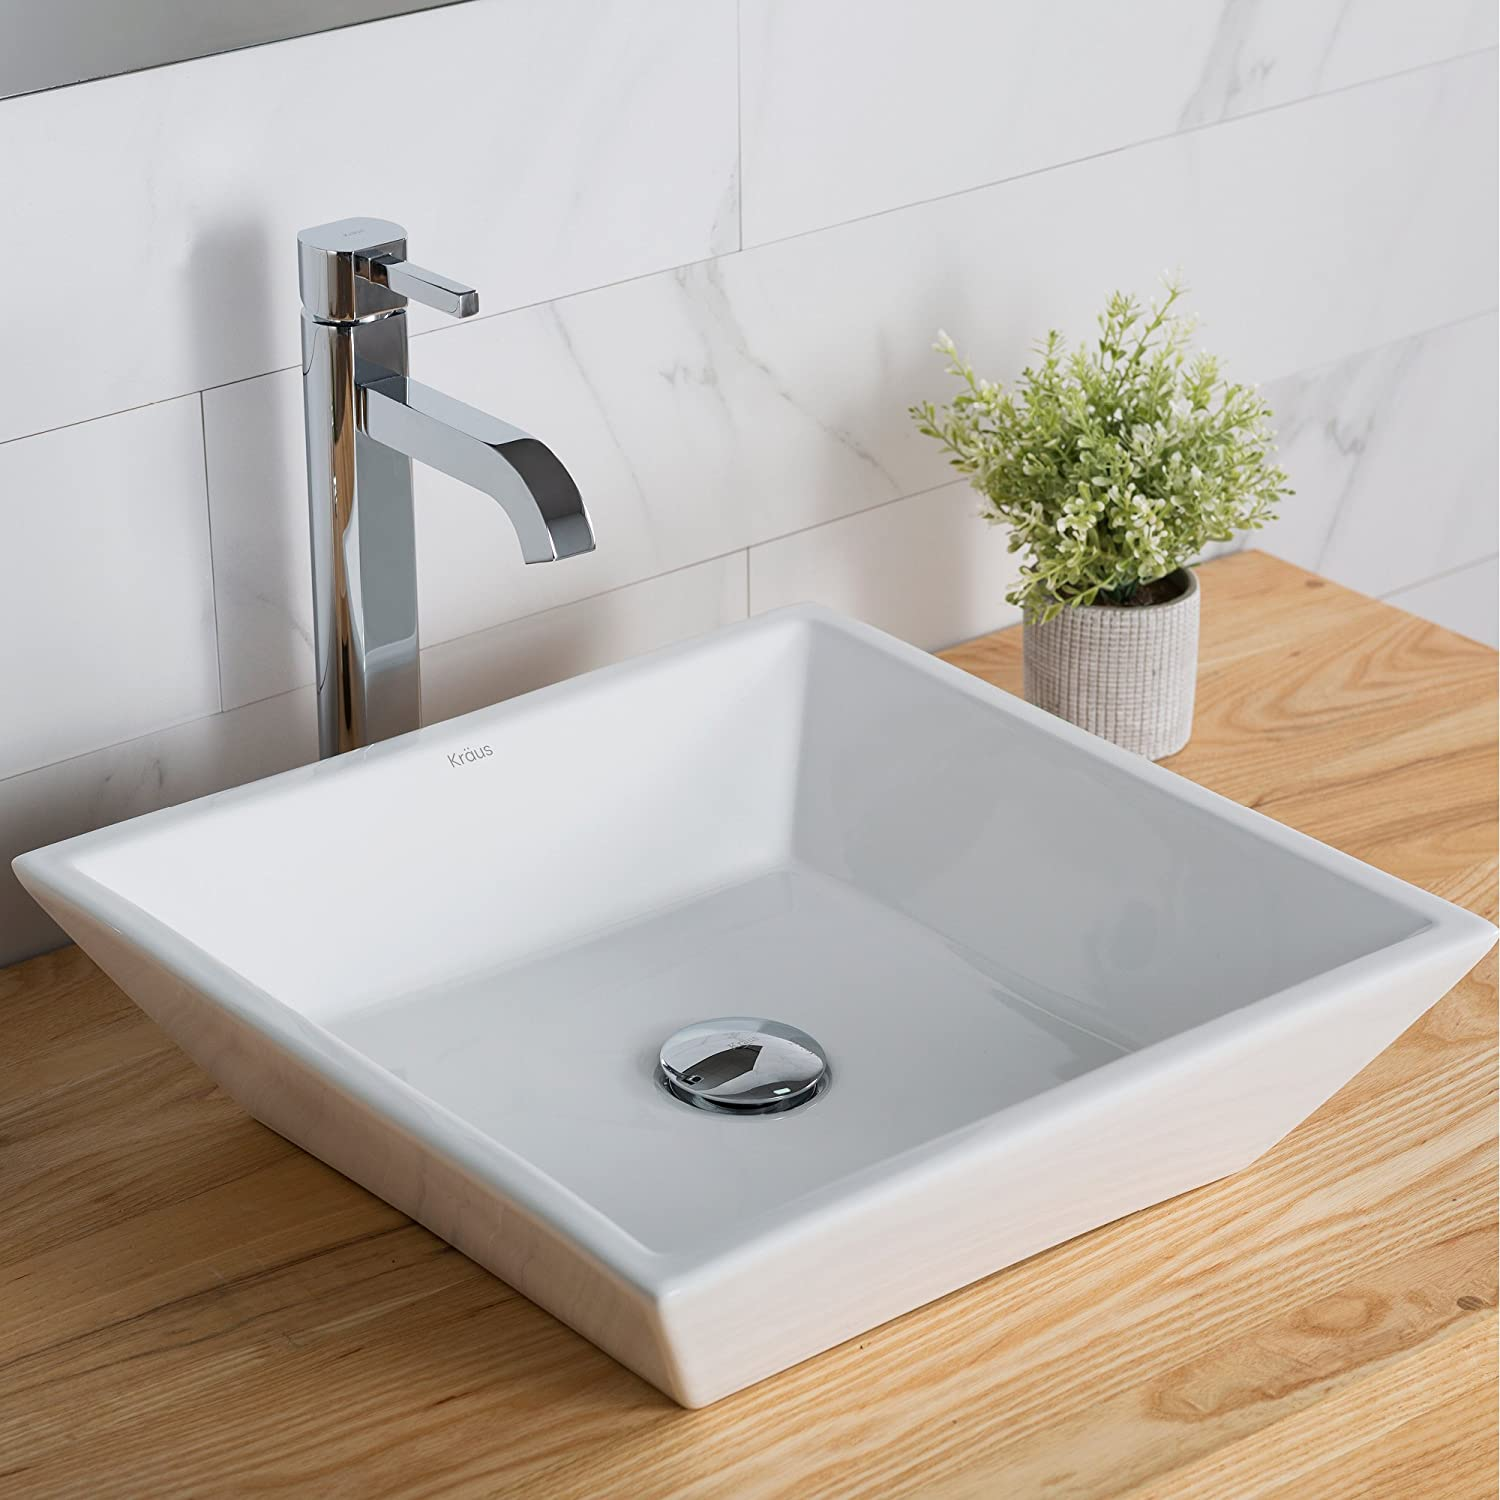 Kraus KCV-125 Ceramic Above counter Square Bathroom Sink, 16.8 x 16.8 x 4.72 inches, White